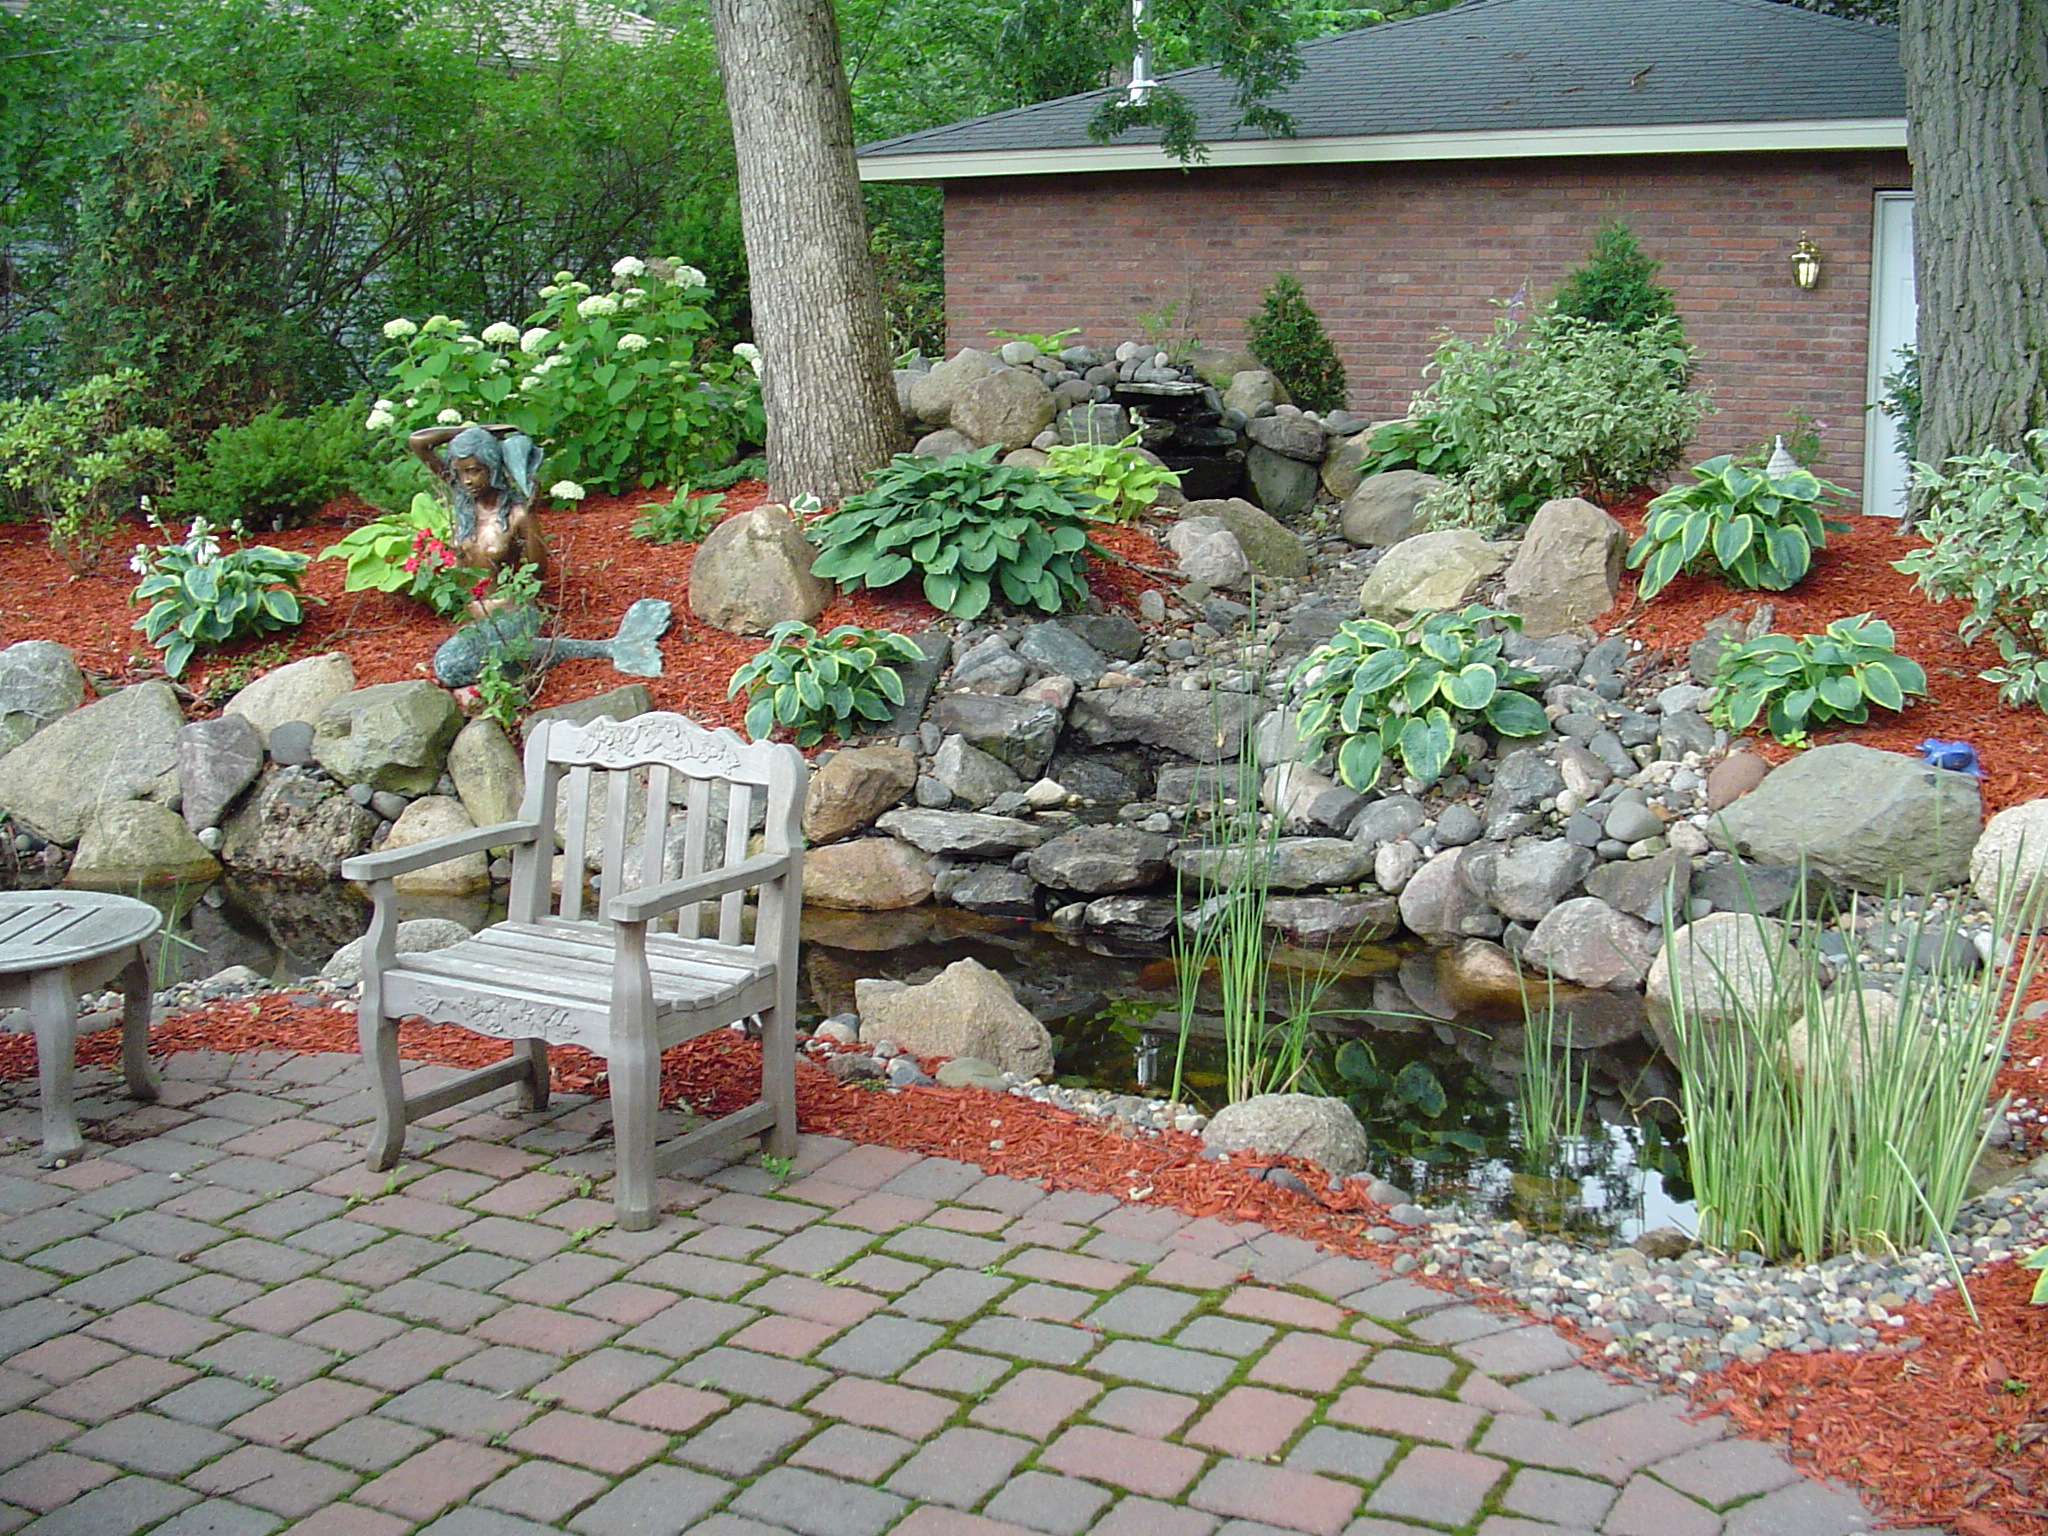 10% Off Complete Job For Mulch And Rock Work If Booked By May 11th 2018 For  The 2018 Season.